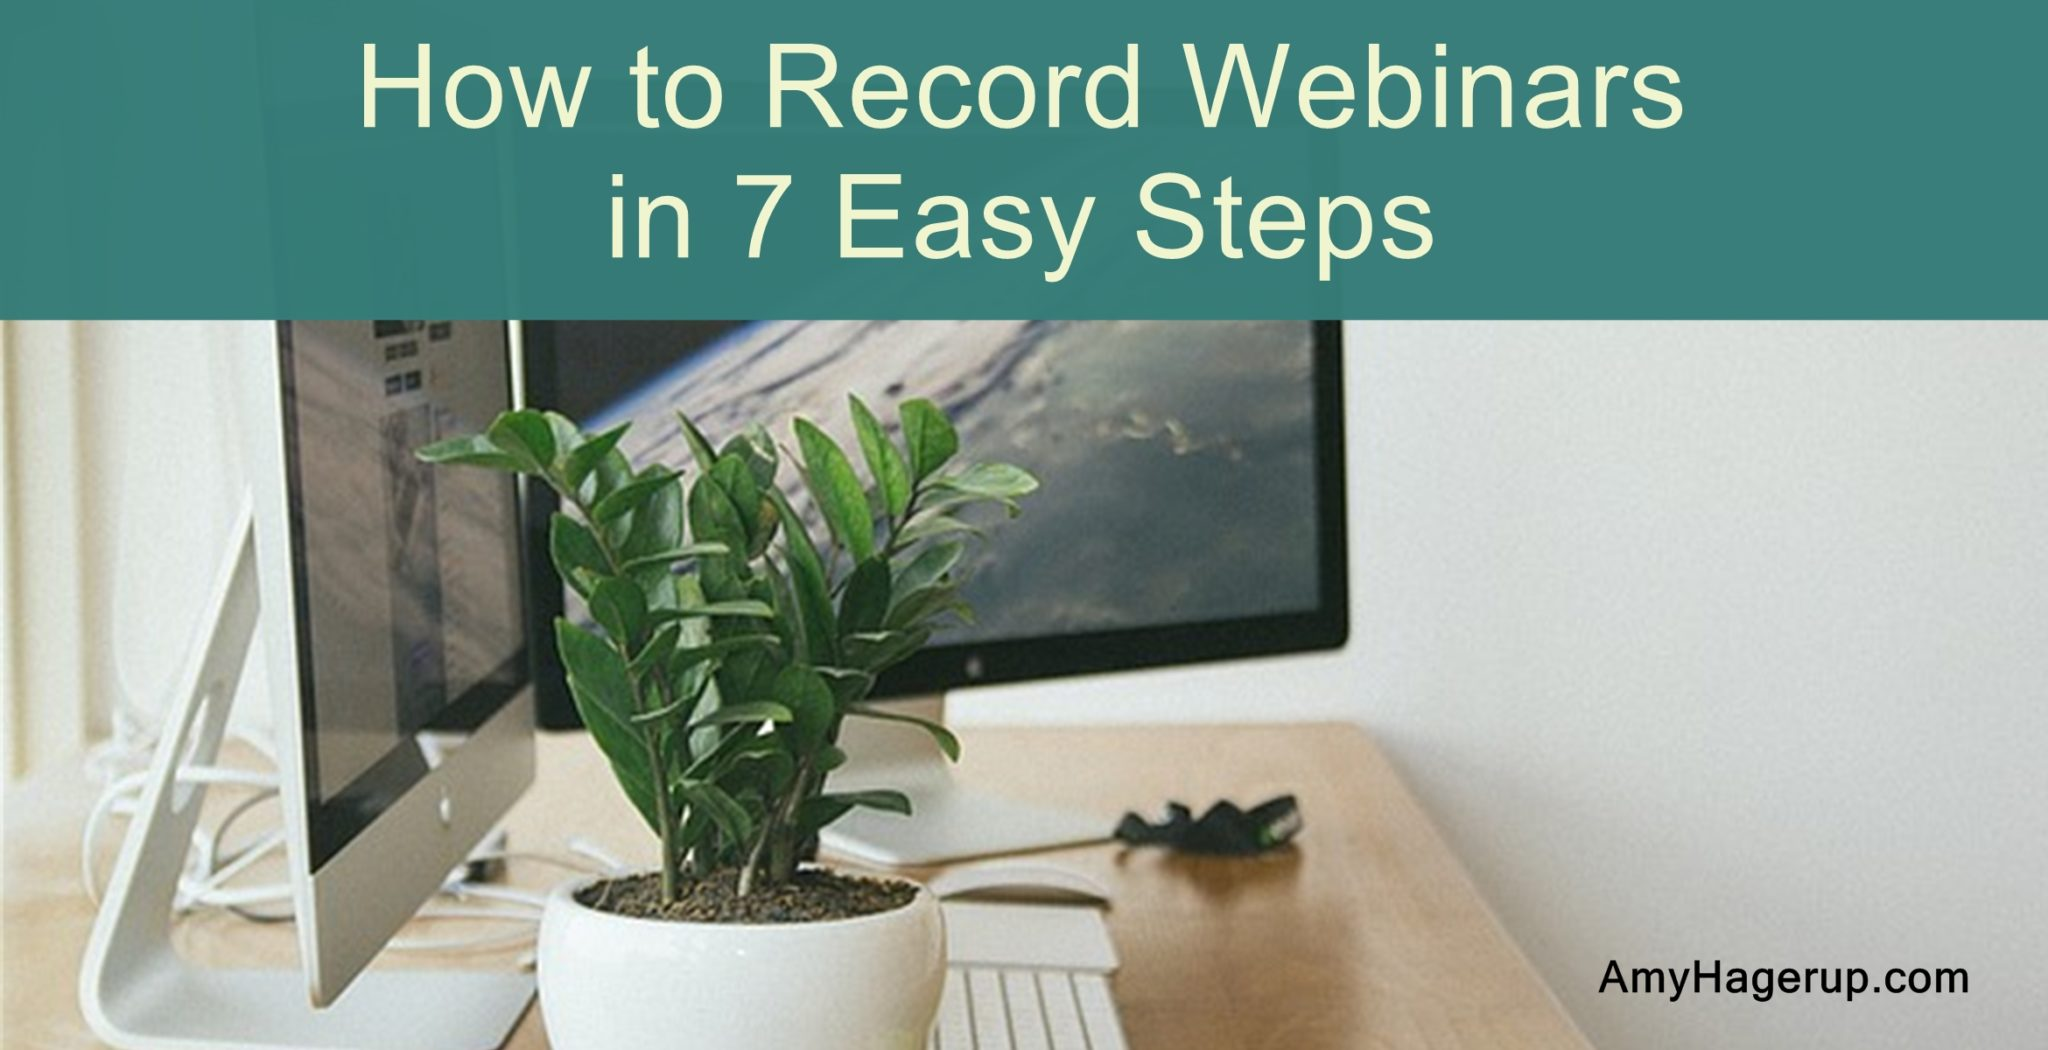 How to record webinars in 7 easy steps so you can make them evergreen.